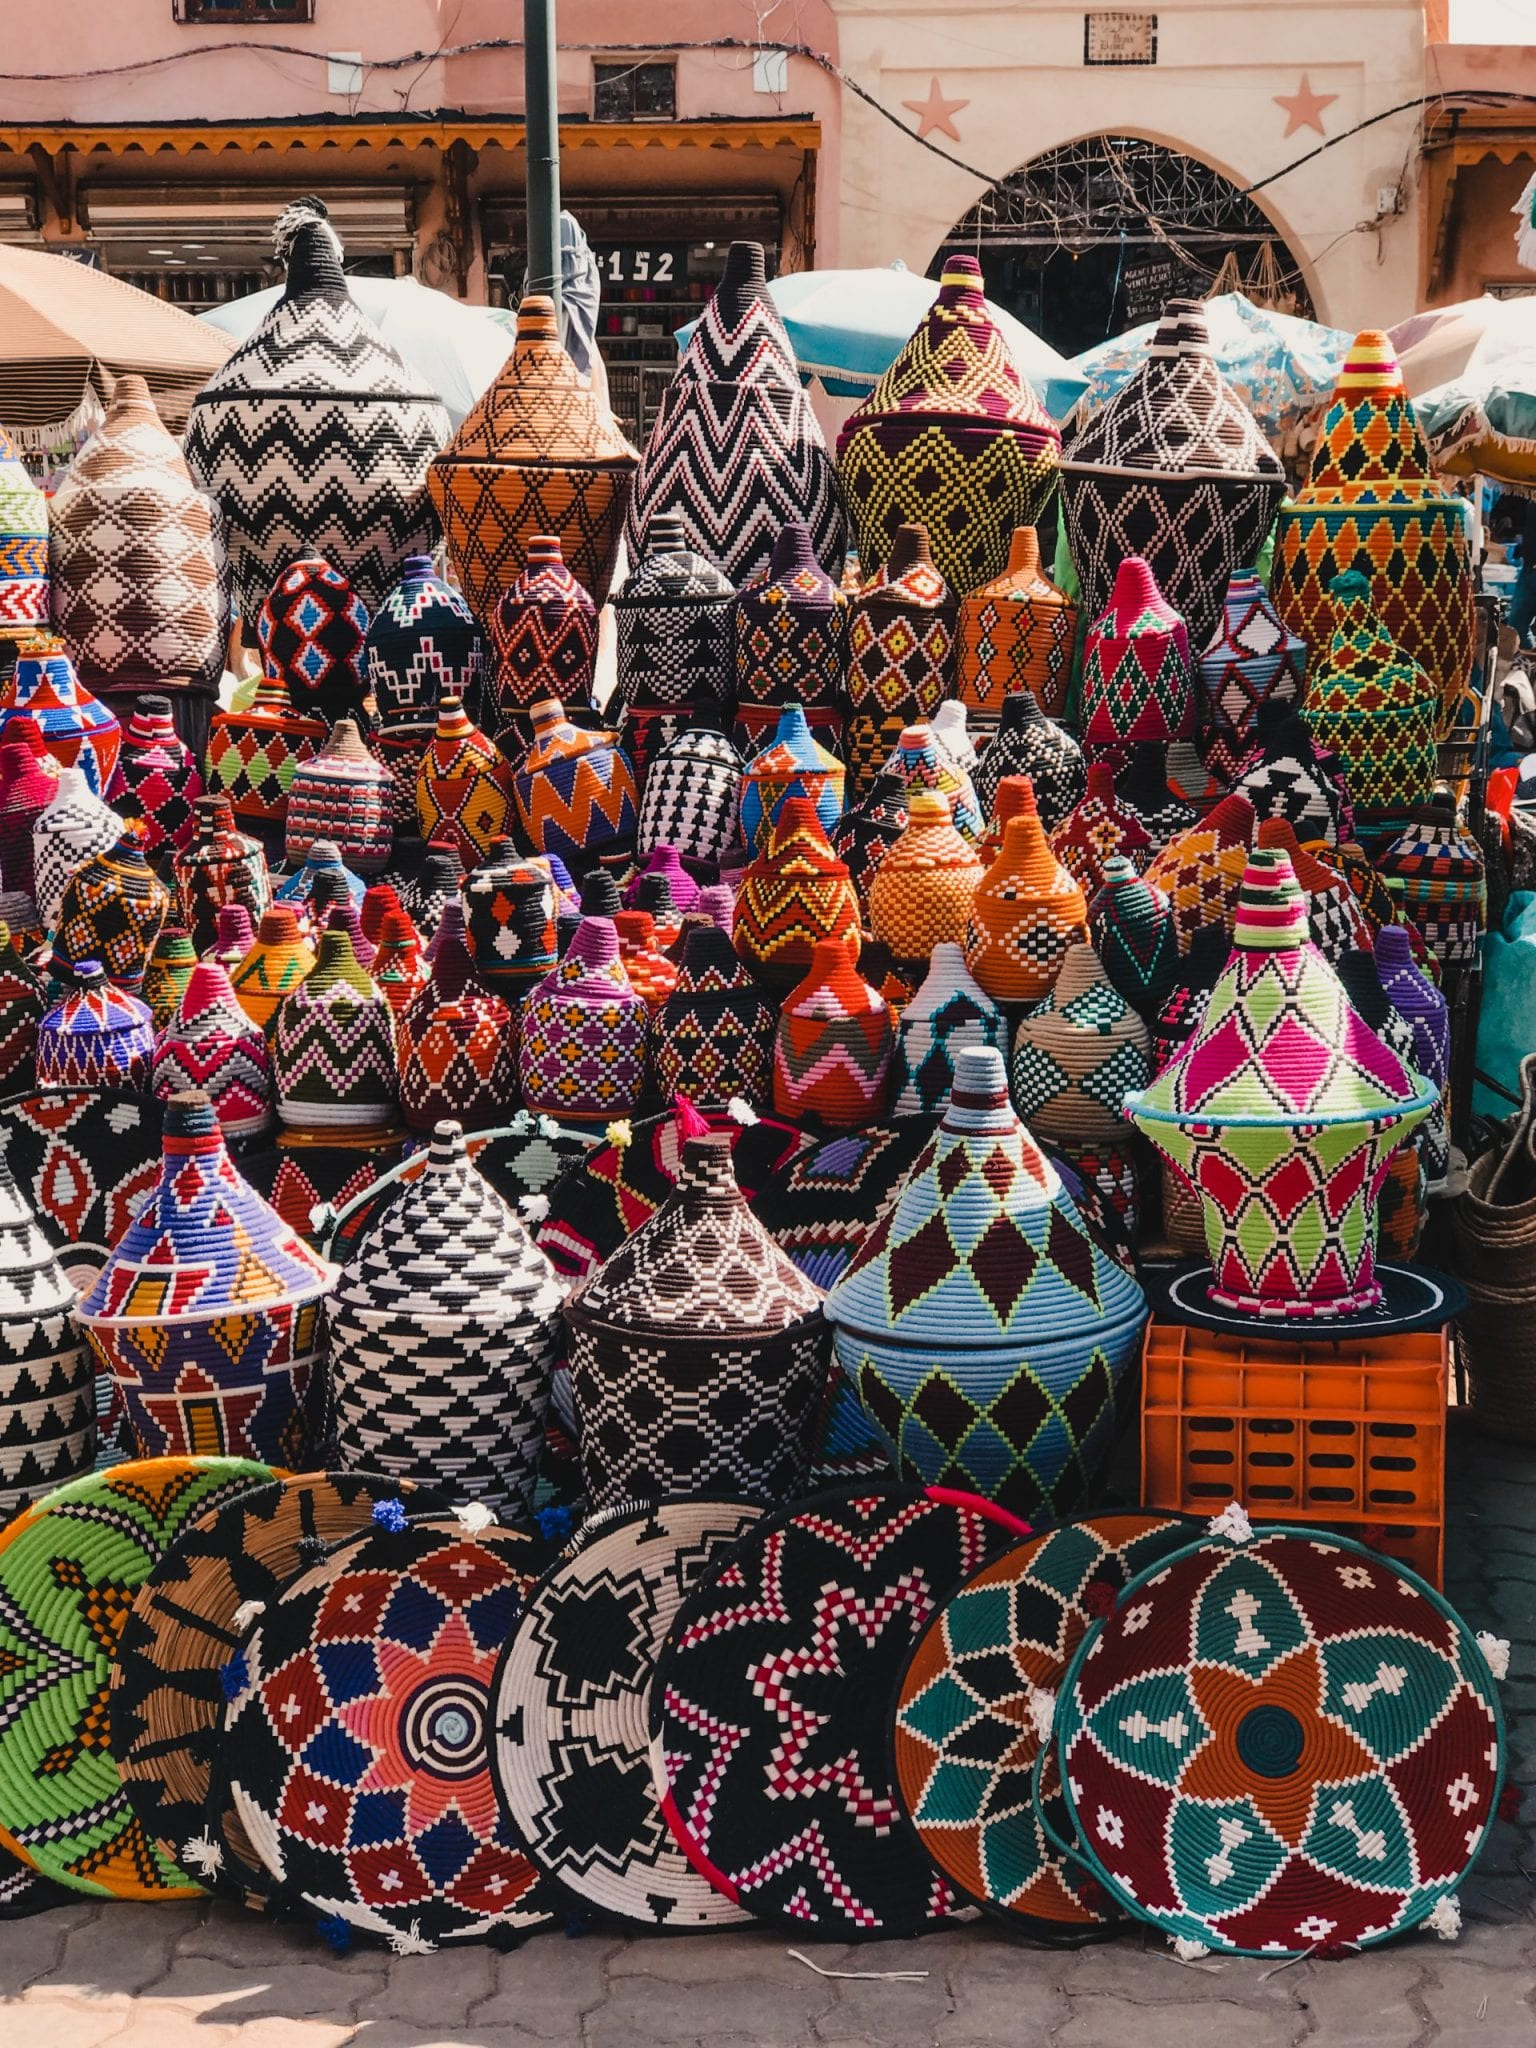 Woven baskets in outdoor market Morocco